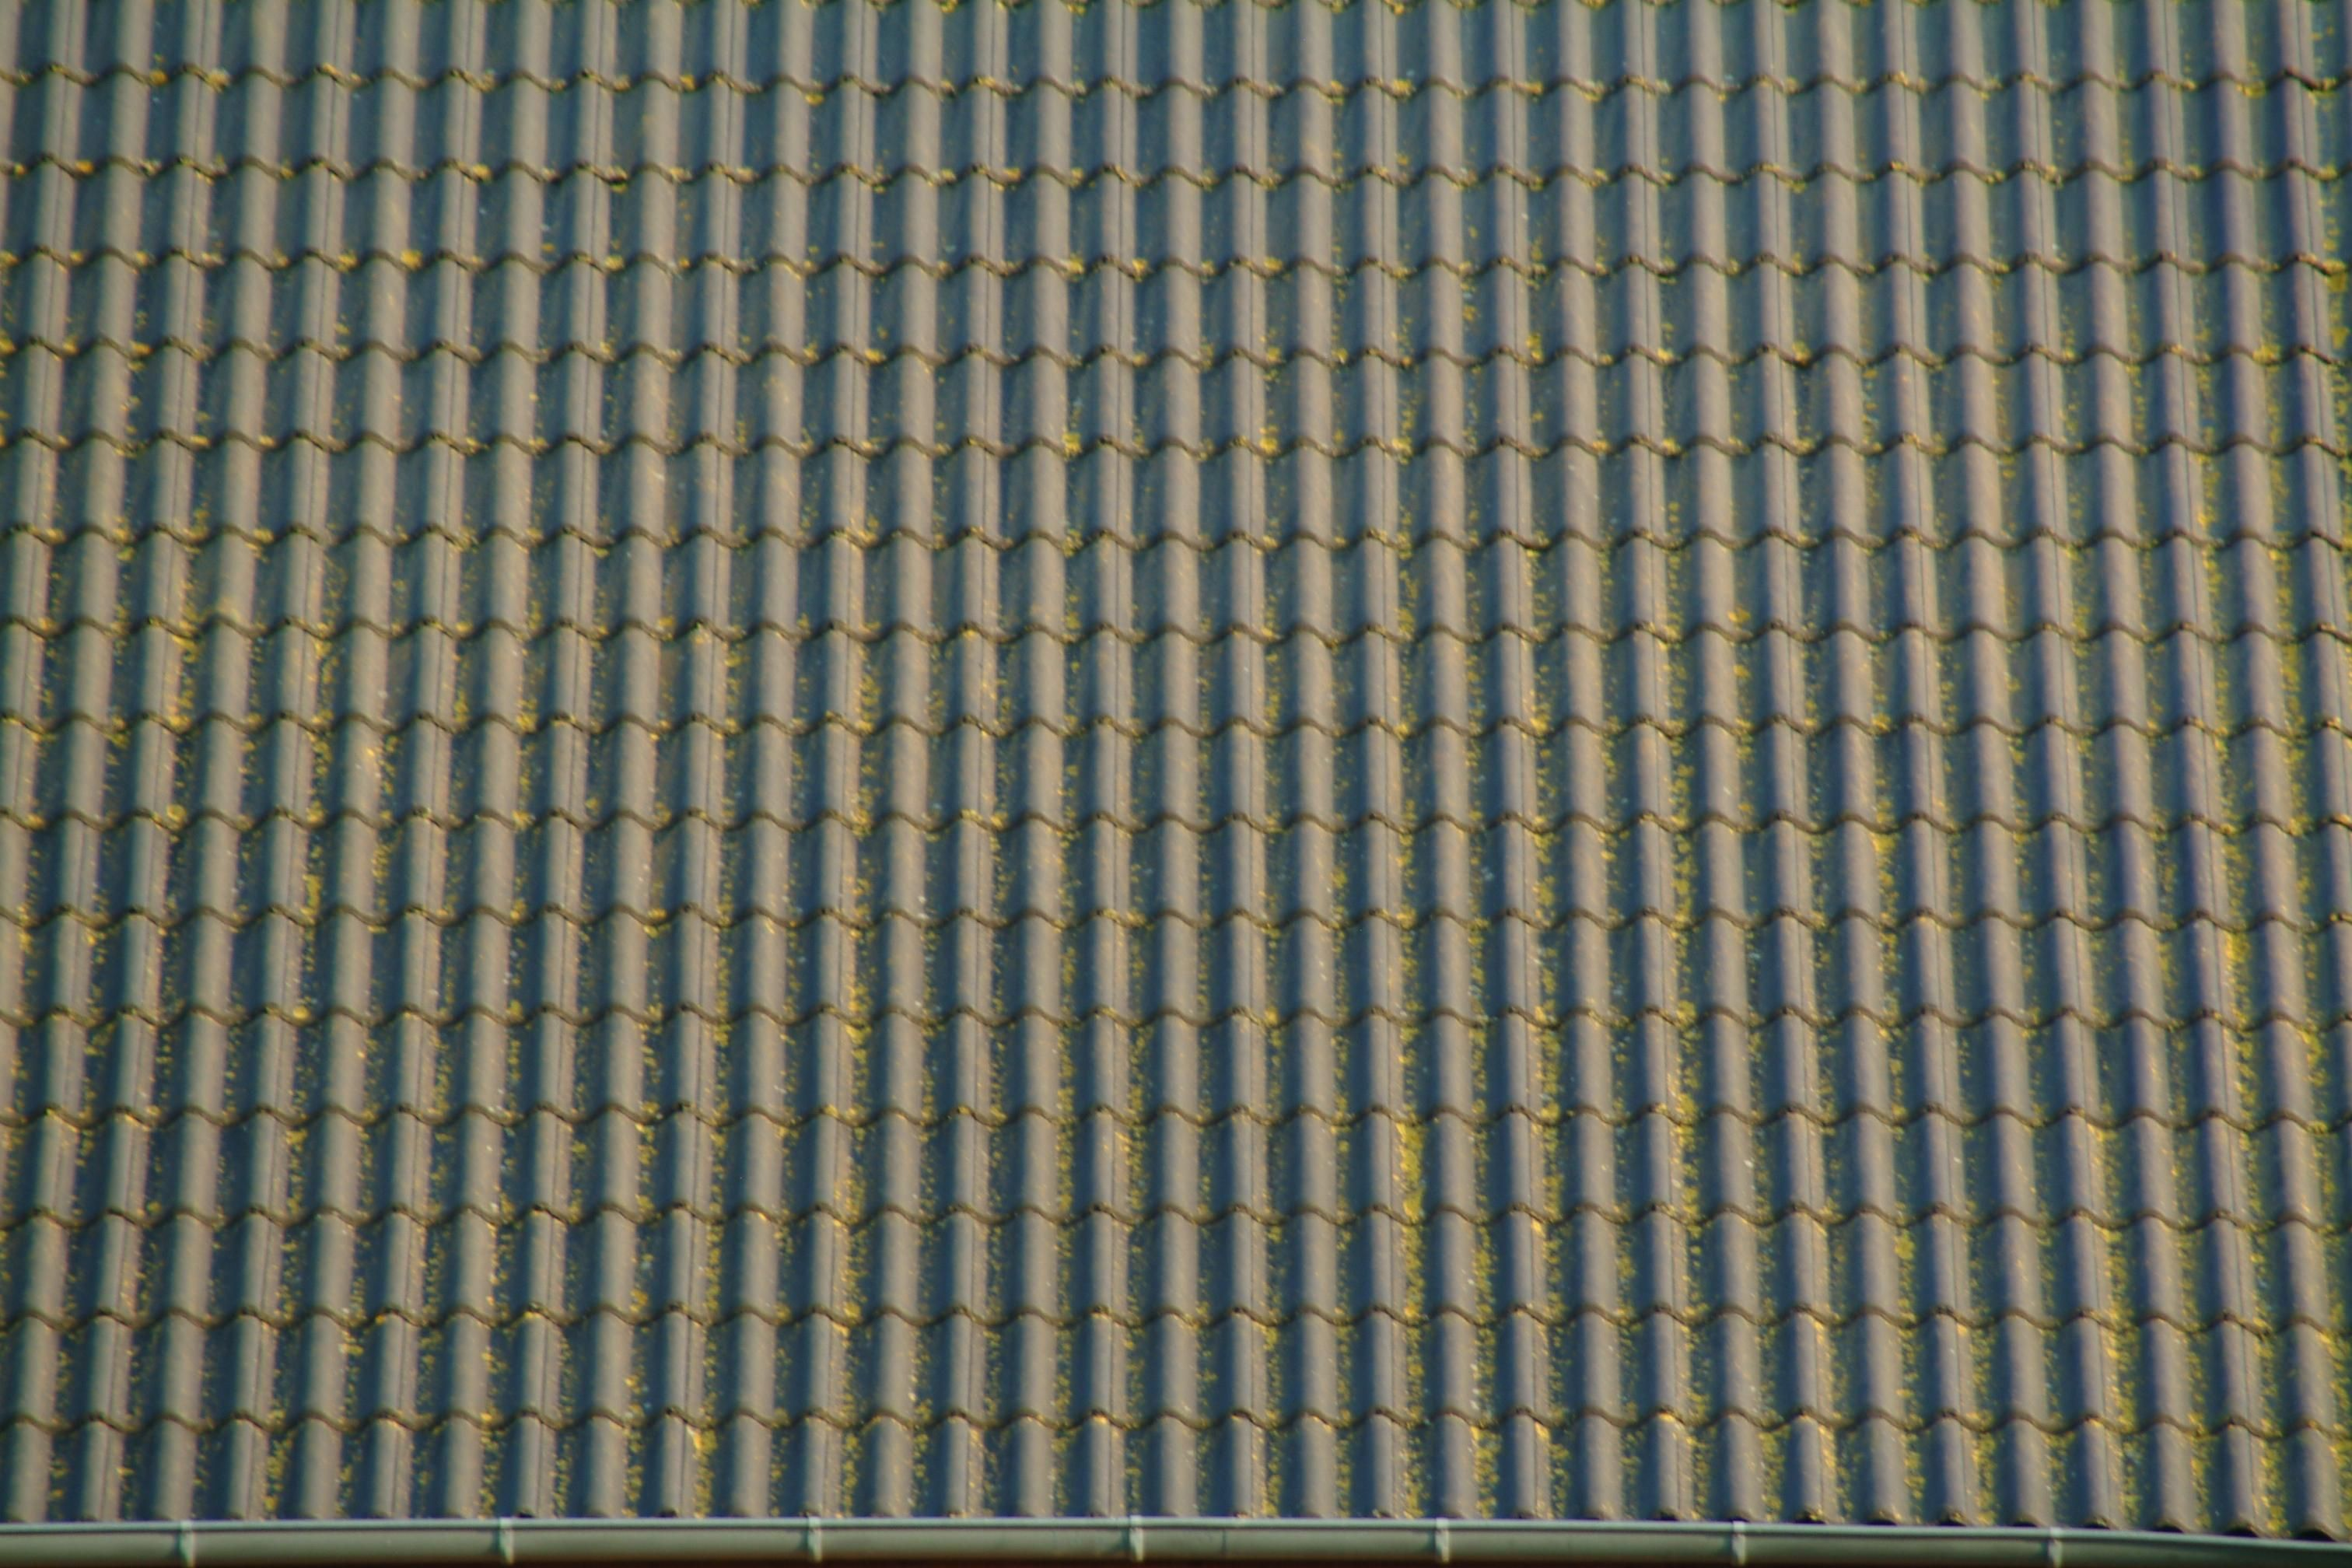 Free Printable Textures Roofing Tiles Royalty Free Stock